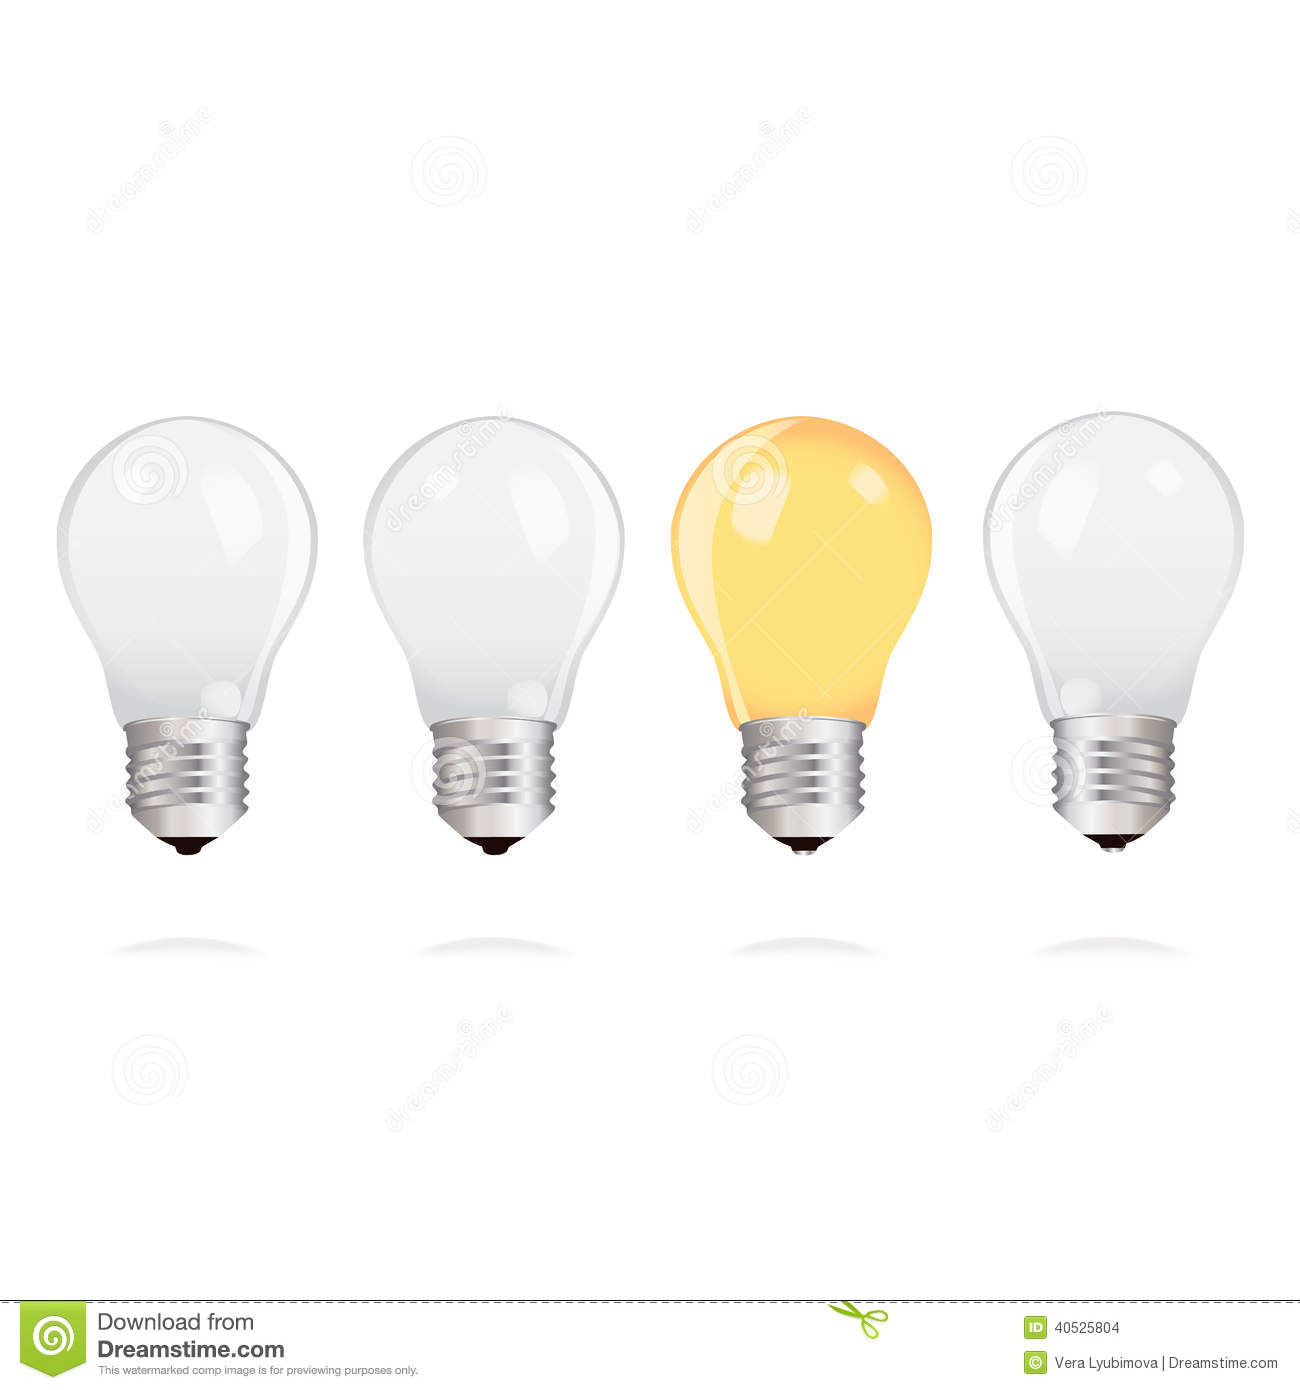 three switched off light bulbs upside down and one light bulb alight. Black Bedroom Furniture Sets. Home Design Ideas